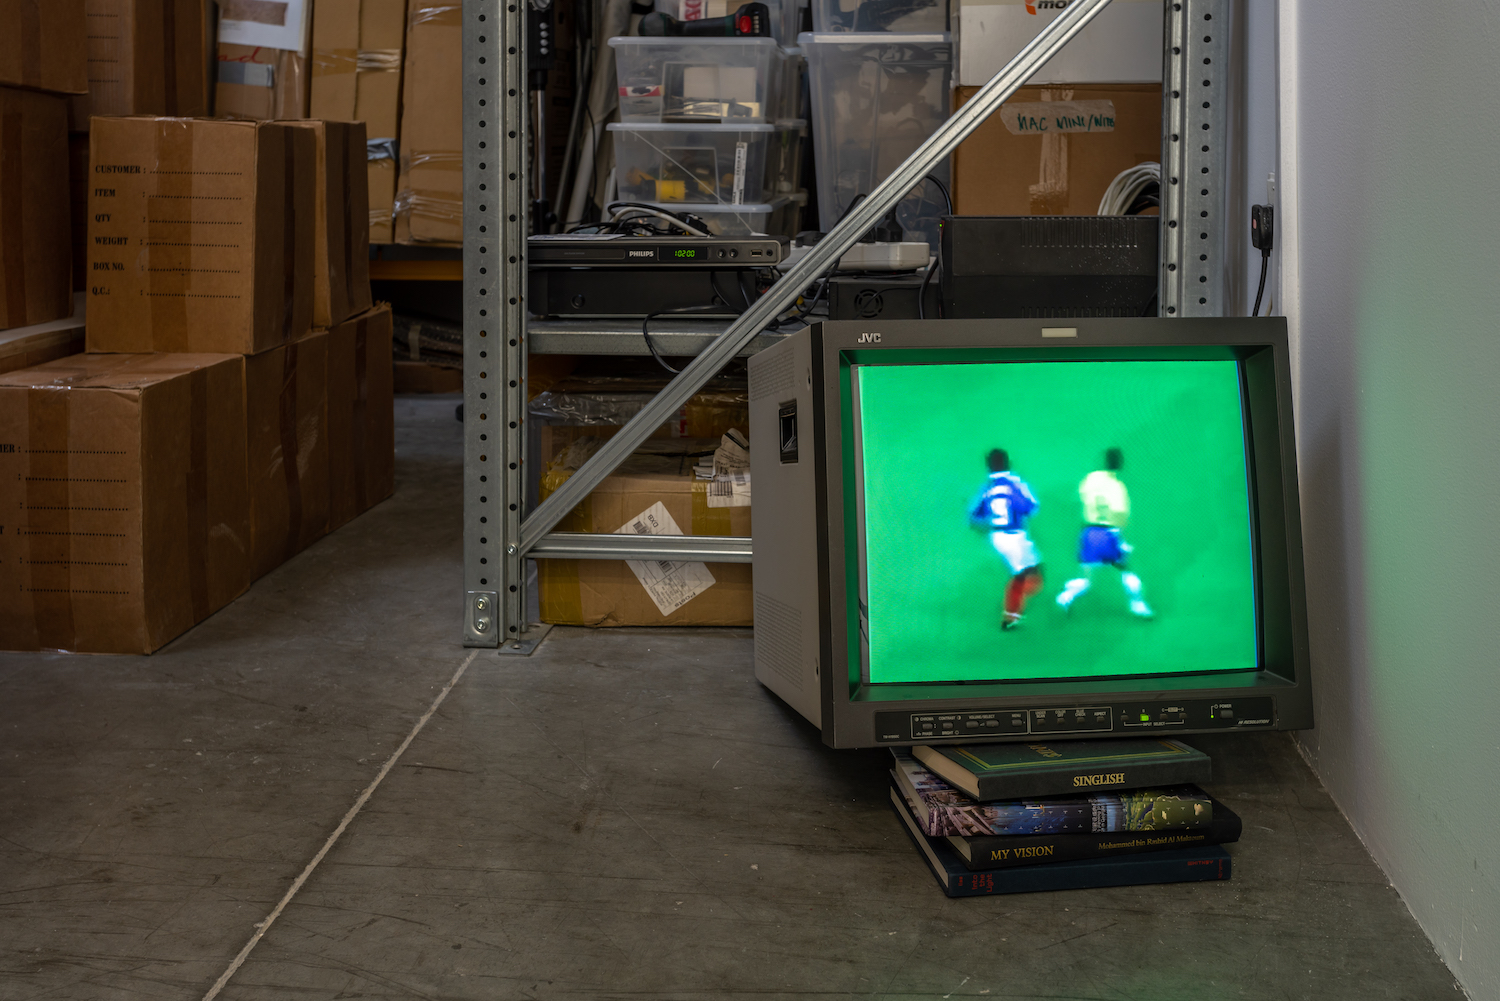 FIFA 98 FINAL 2018 Video (looped), CRT TV Football match between Brazil and France national teams